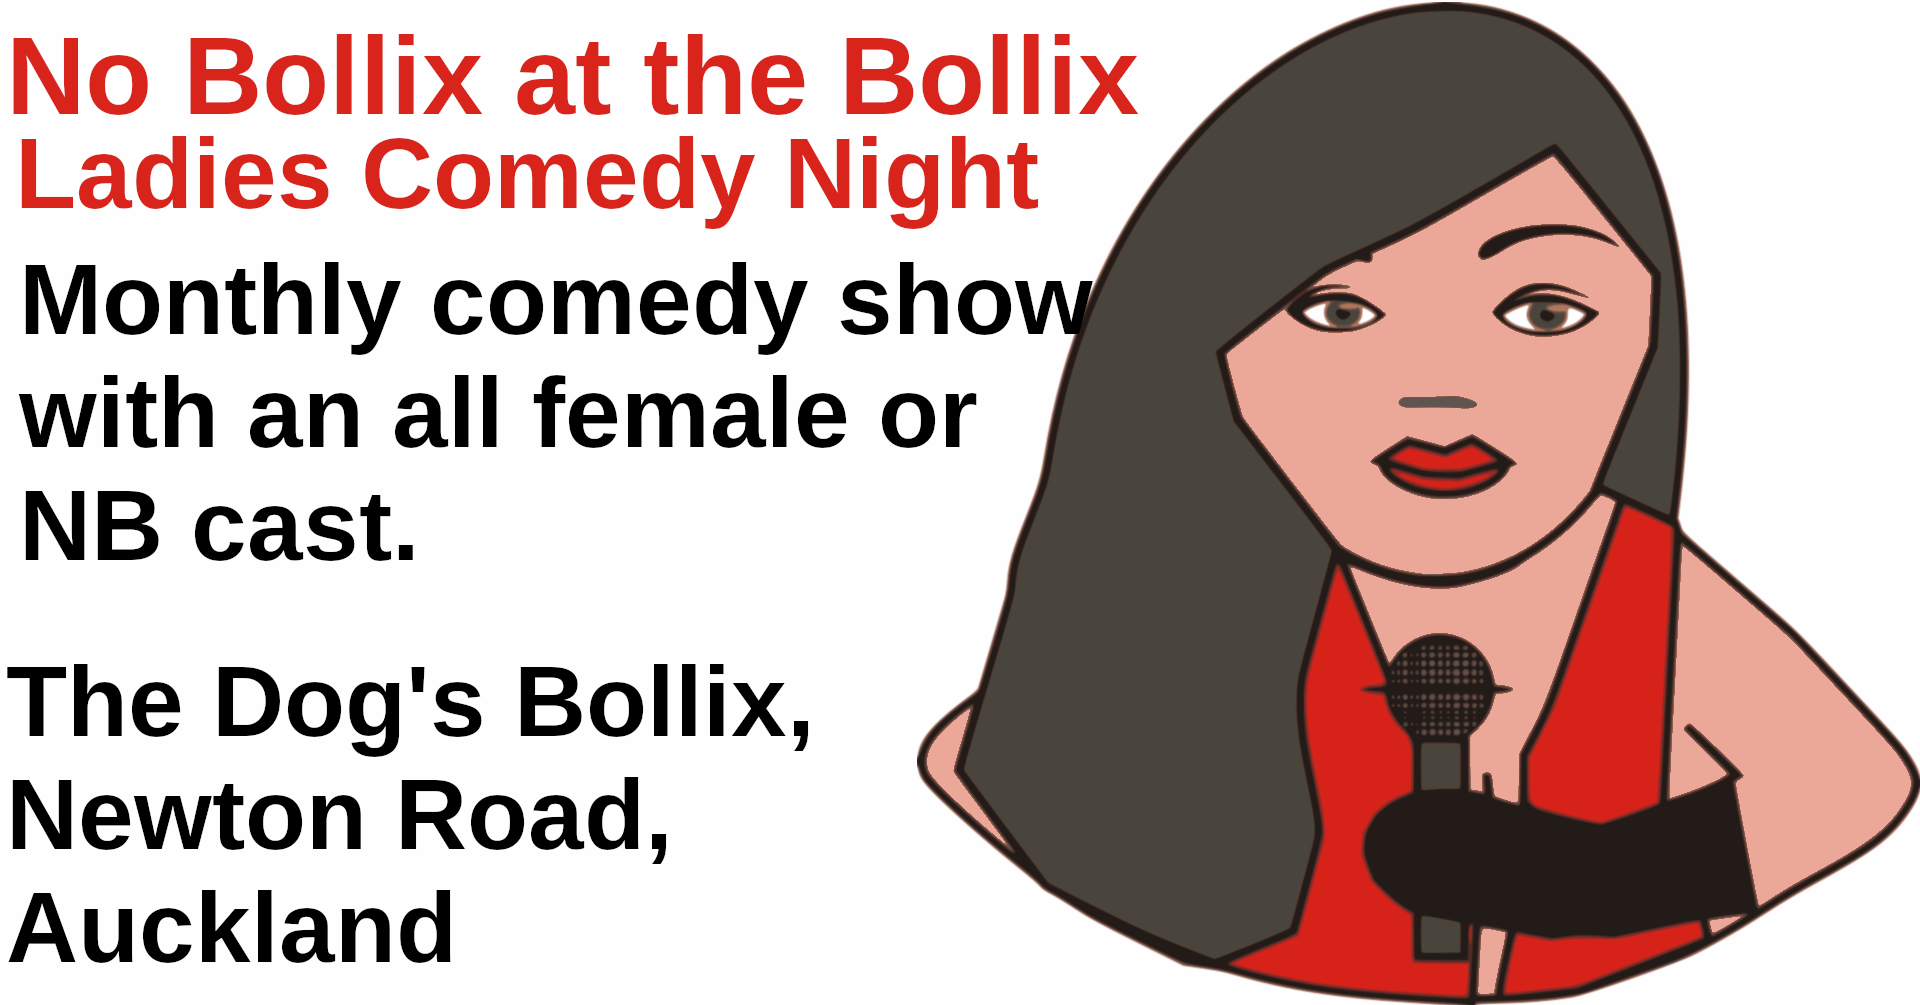 No Bollix at The Bollix